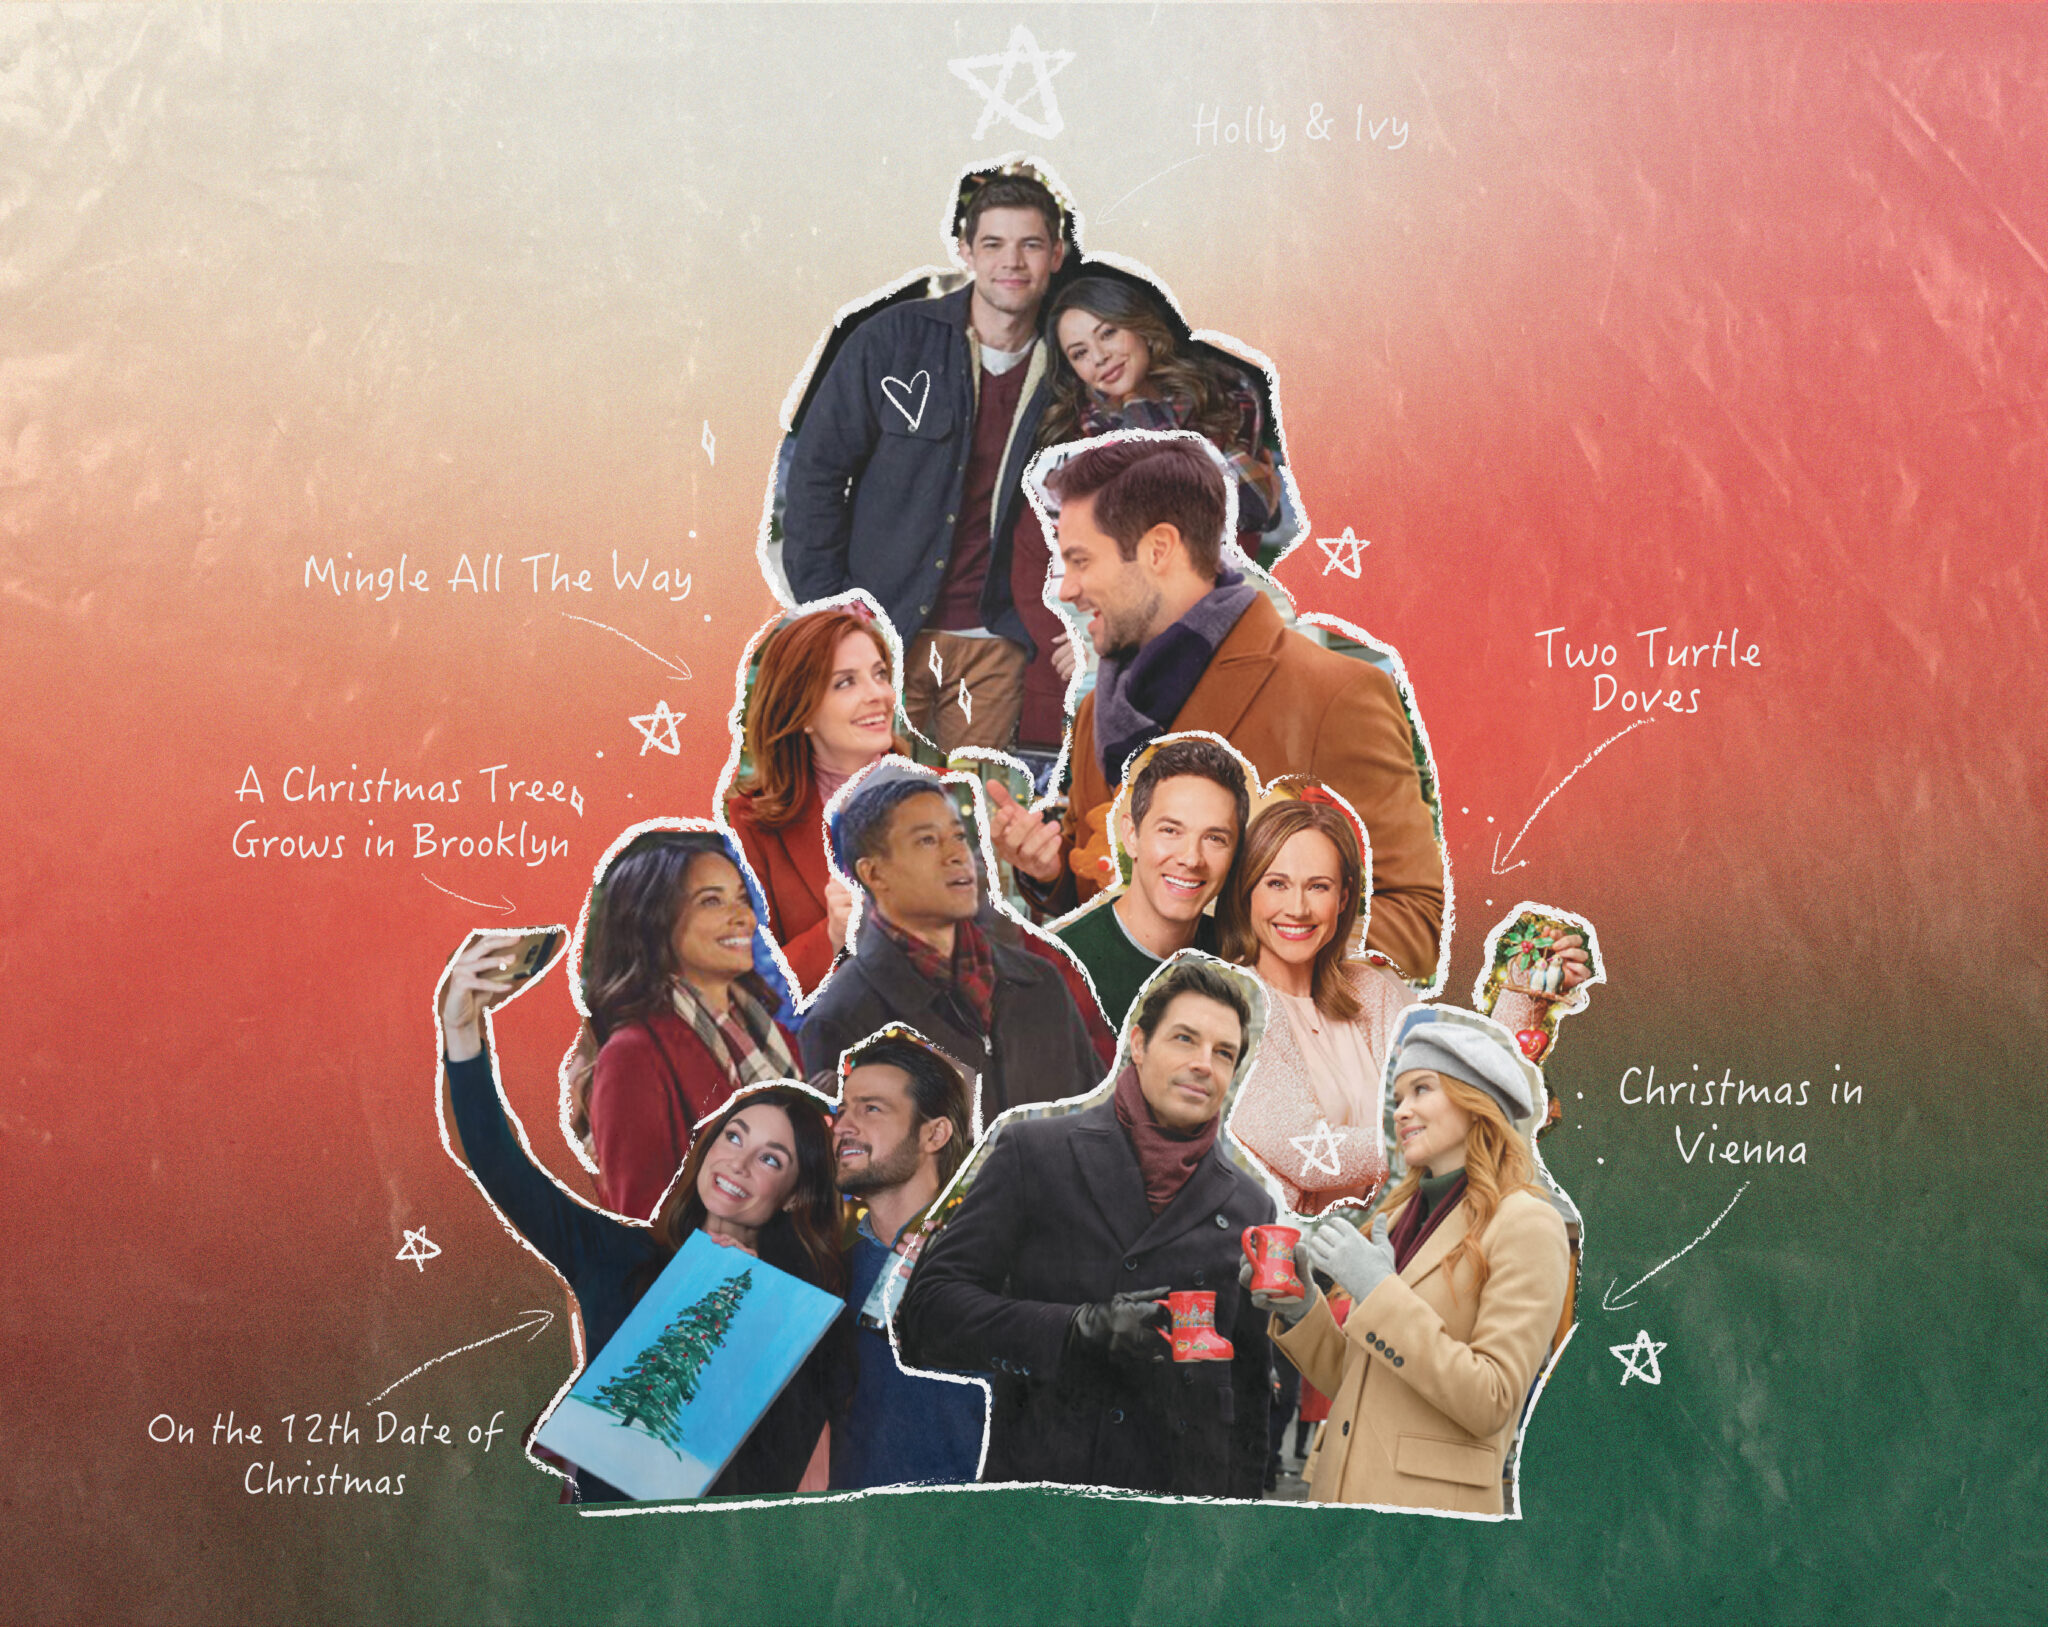 Collage featuring still images from six Hallmark Christmas movies.